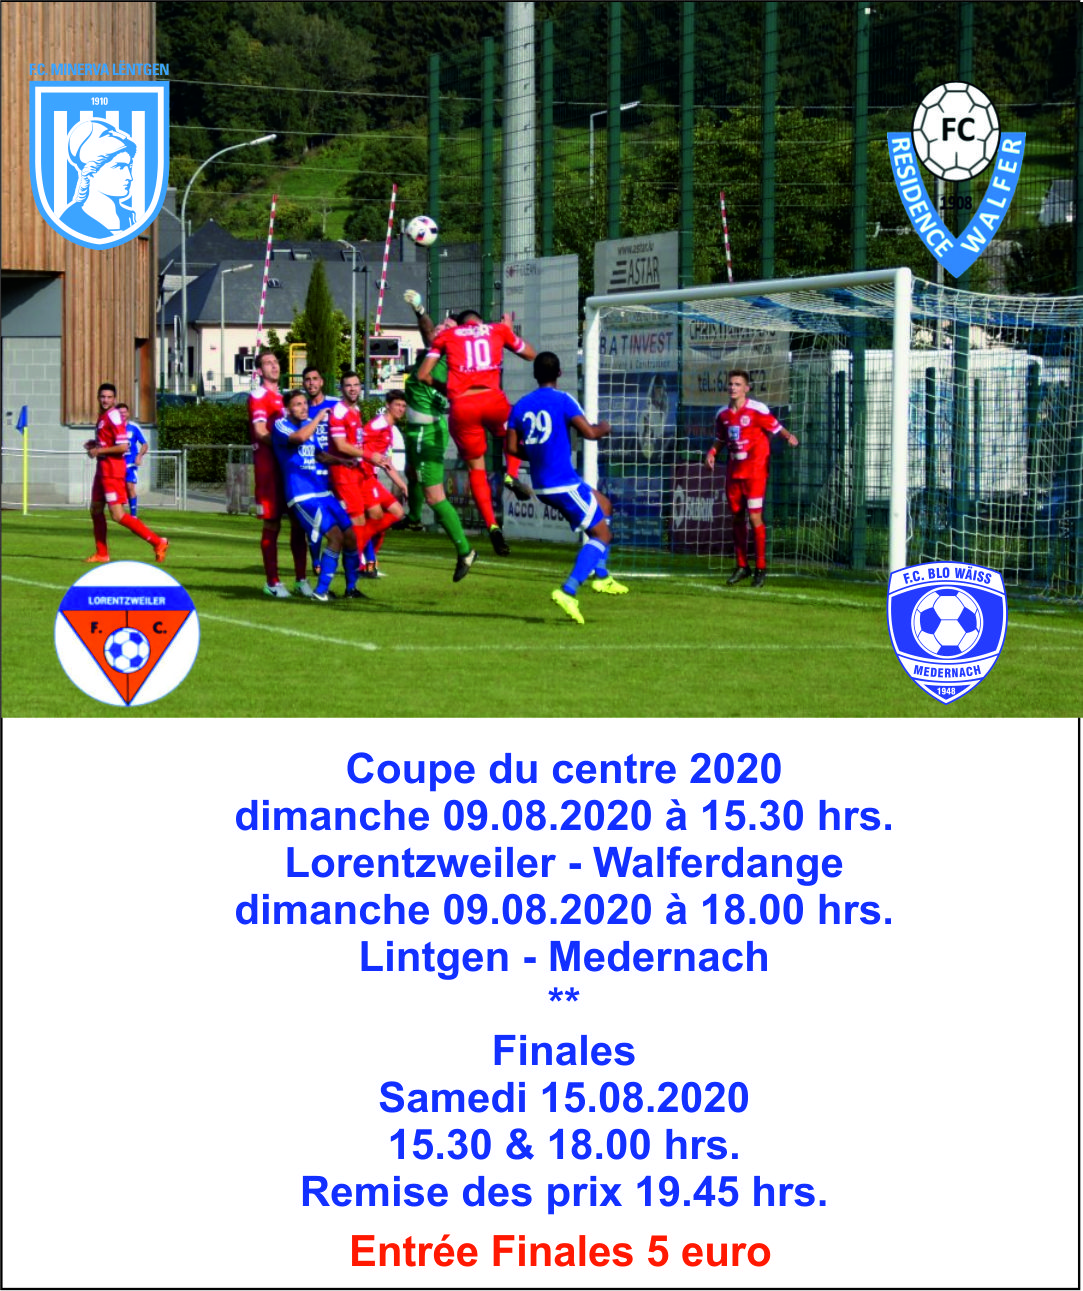 Coupe du centre 2020